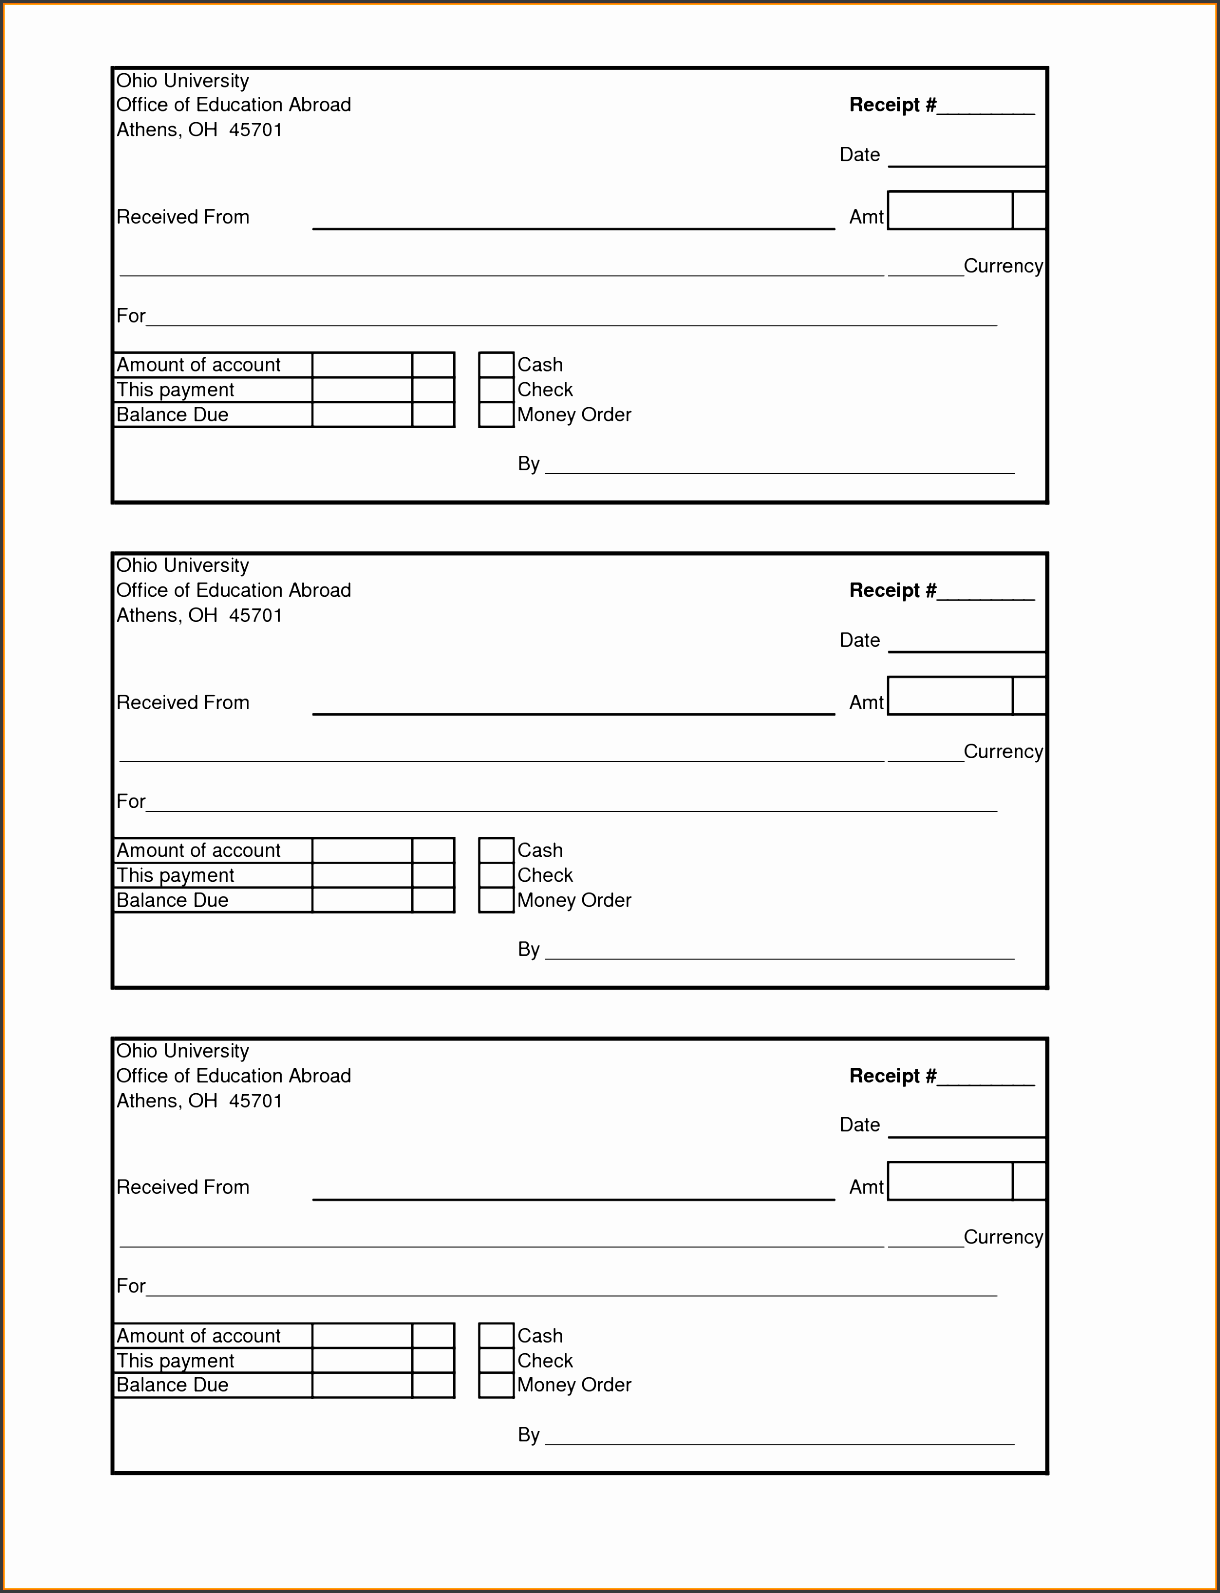 Expense Receipt Template Write Reflective Essay News Clerk Cover Payment  Receipt Design Fxszr Beautiful Expense Receipt  Expense Receipt Template